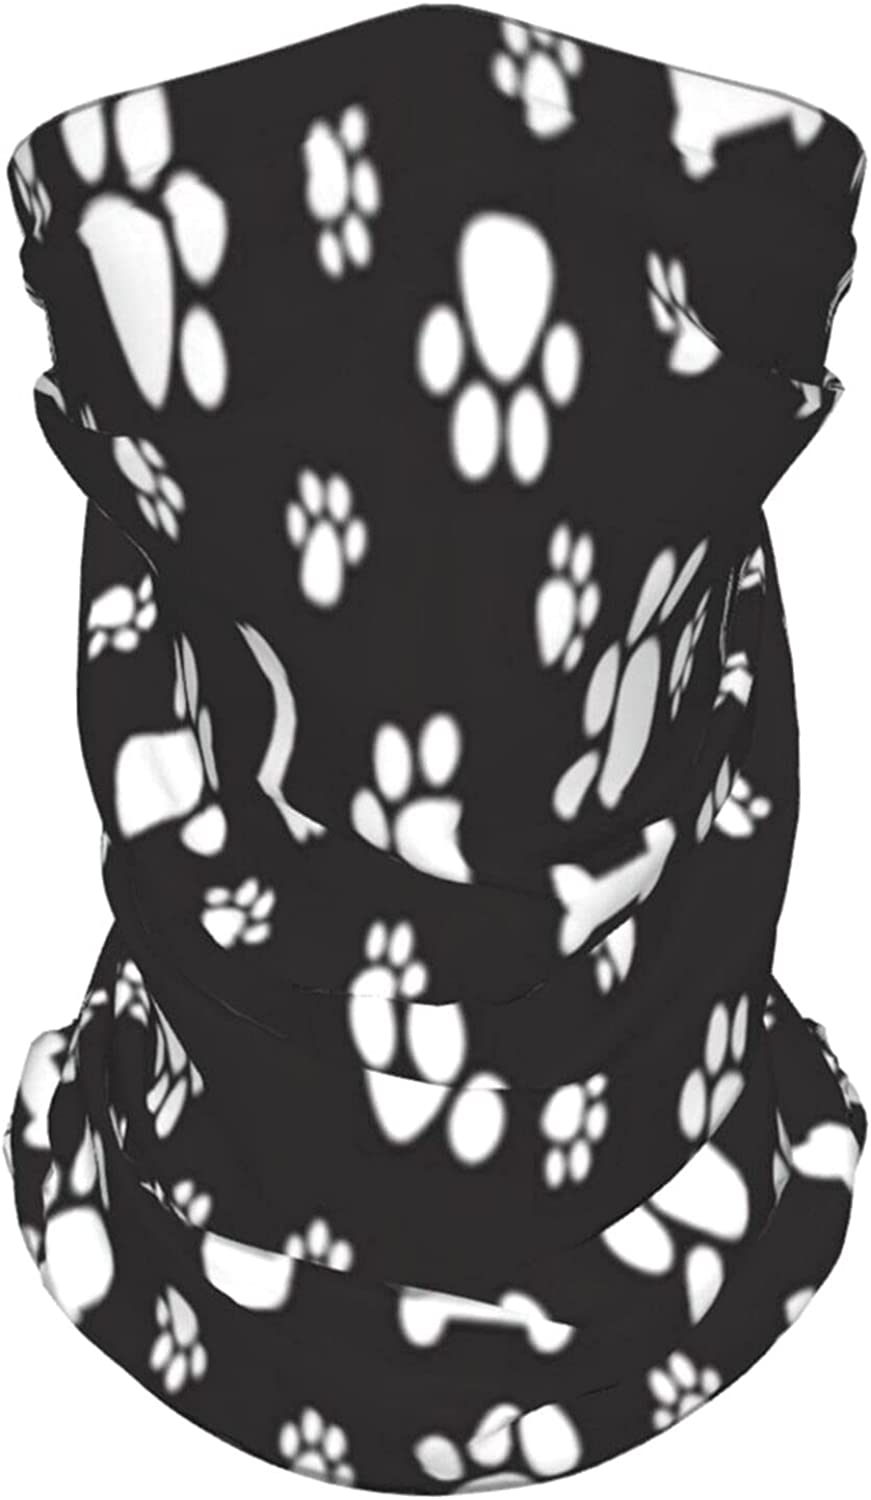 Dog Paw Cat Summer Ice Silk Breathable Face Mask Neck Gaiter Scarf Bandanas for Fishing,Hiking,Running,Motorcycle and Daily Wear